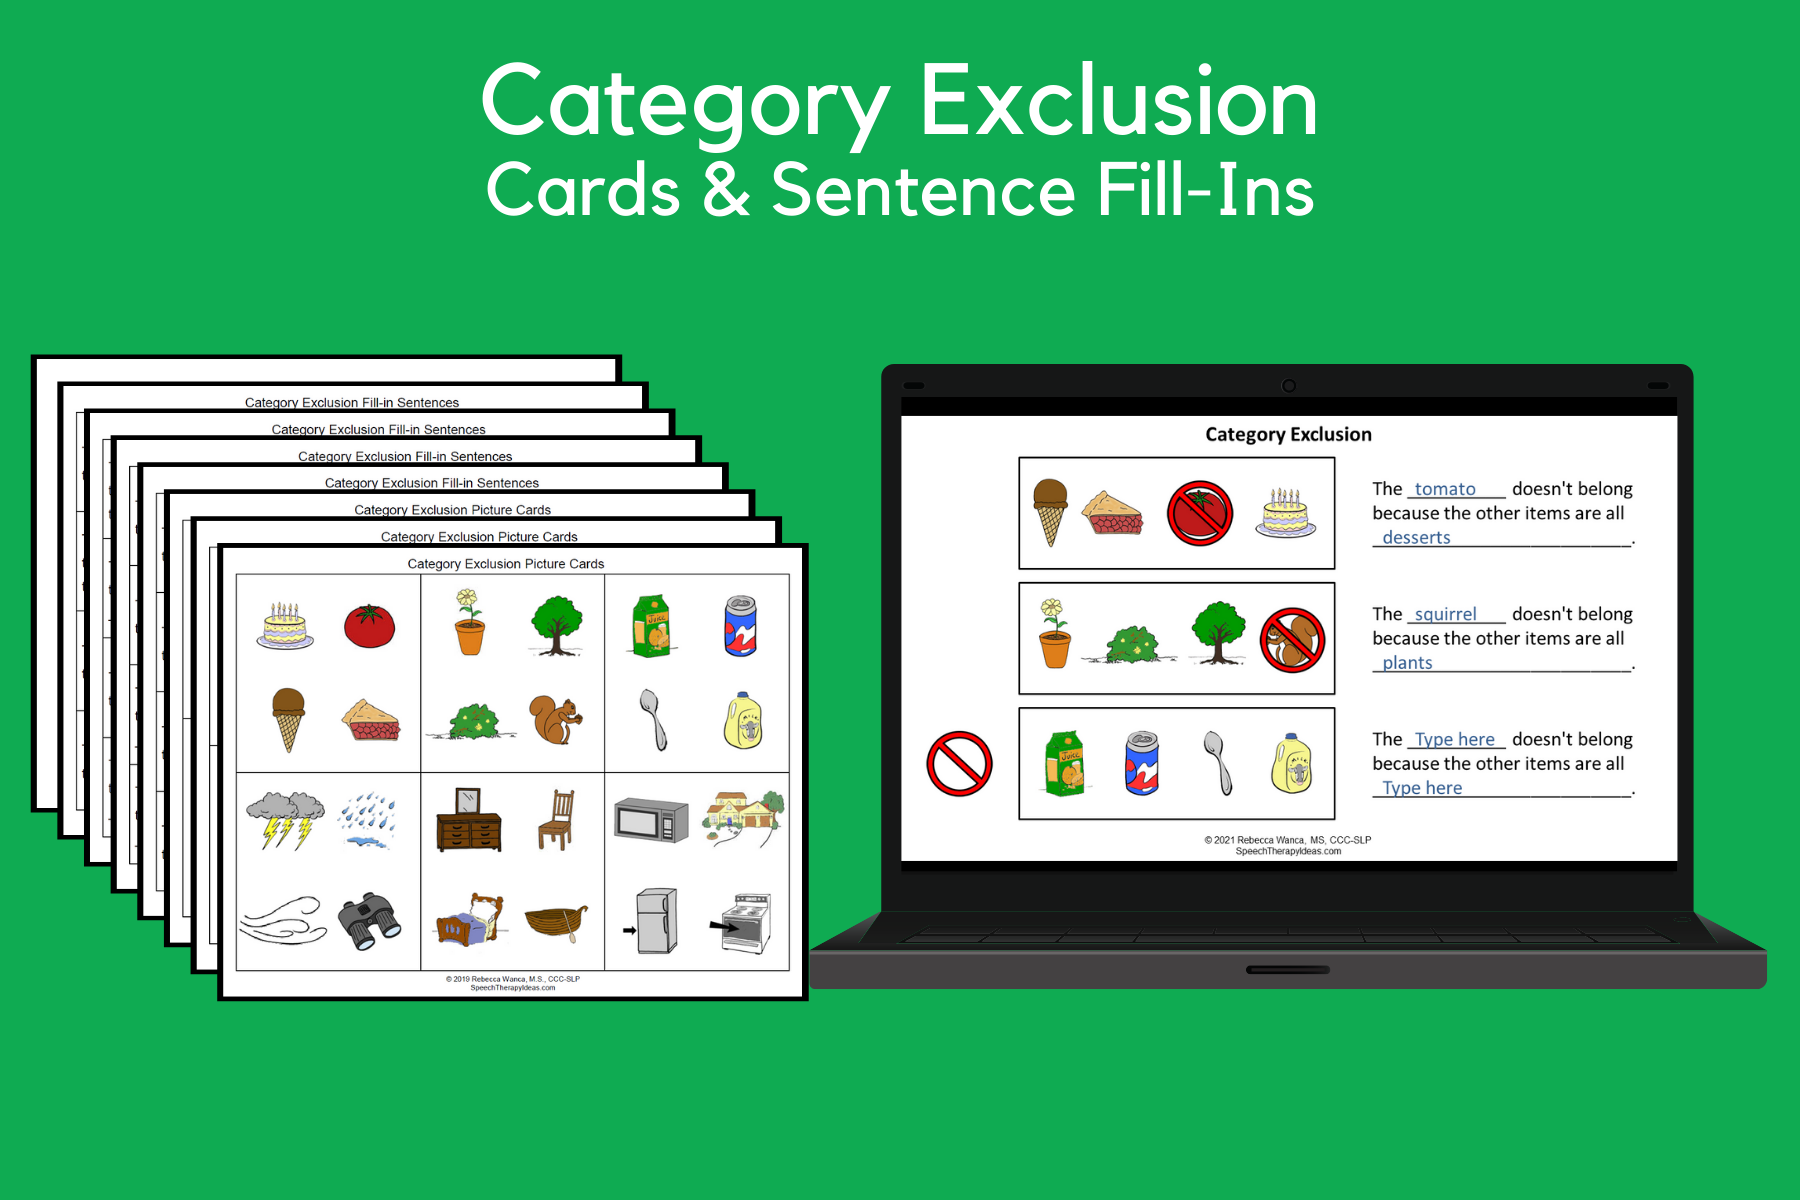 Category Exclusion Picture Cards and Fill-in Sentences